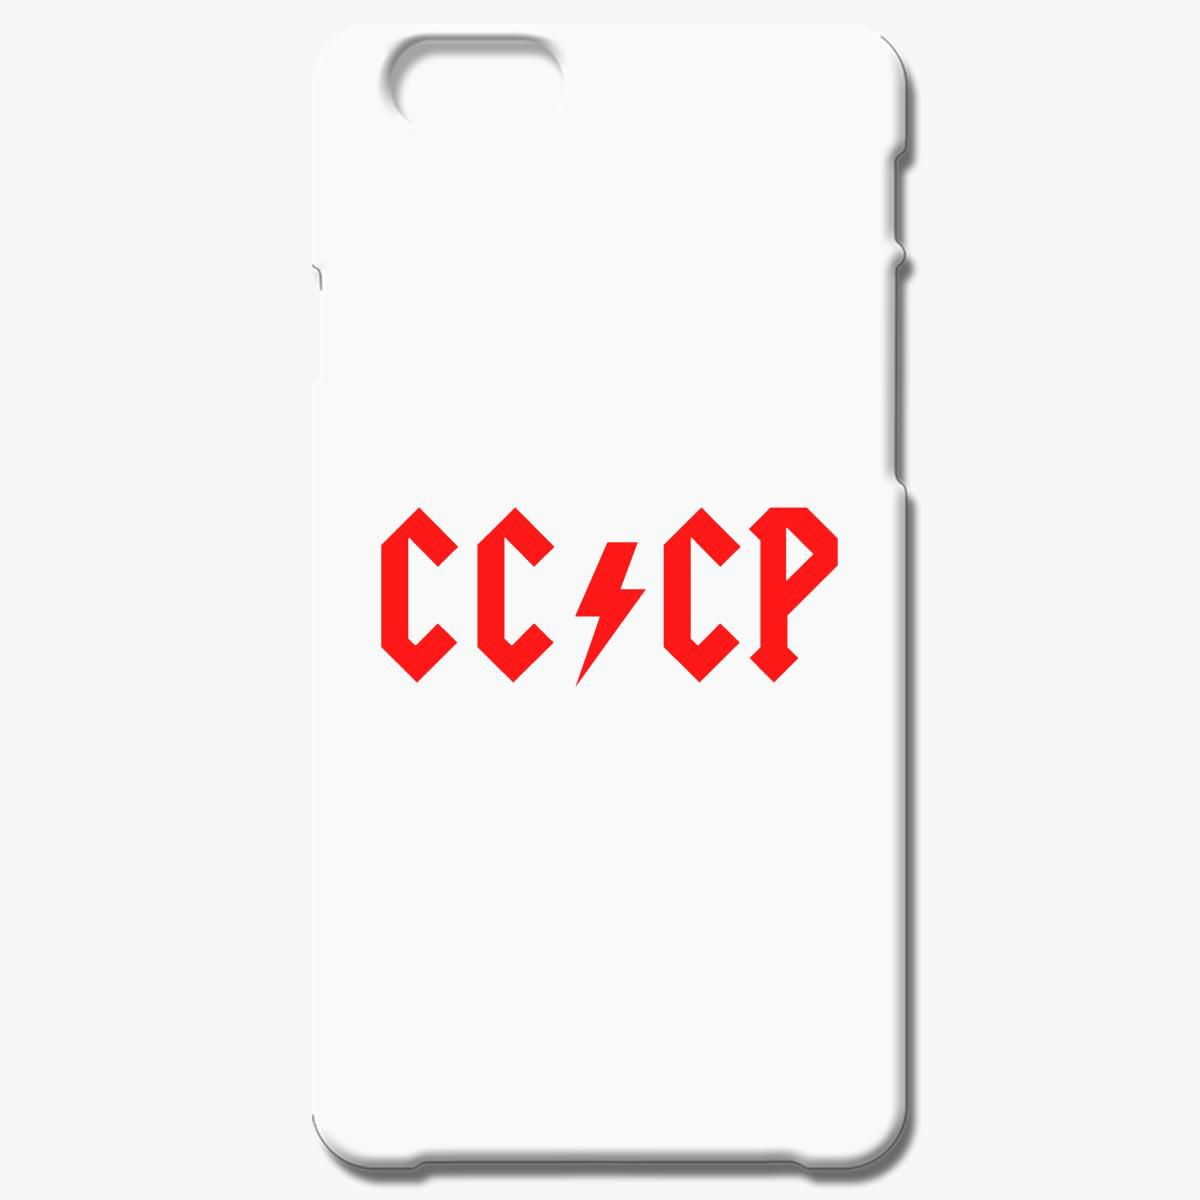 Cccp Iphone 7 Plus Case